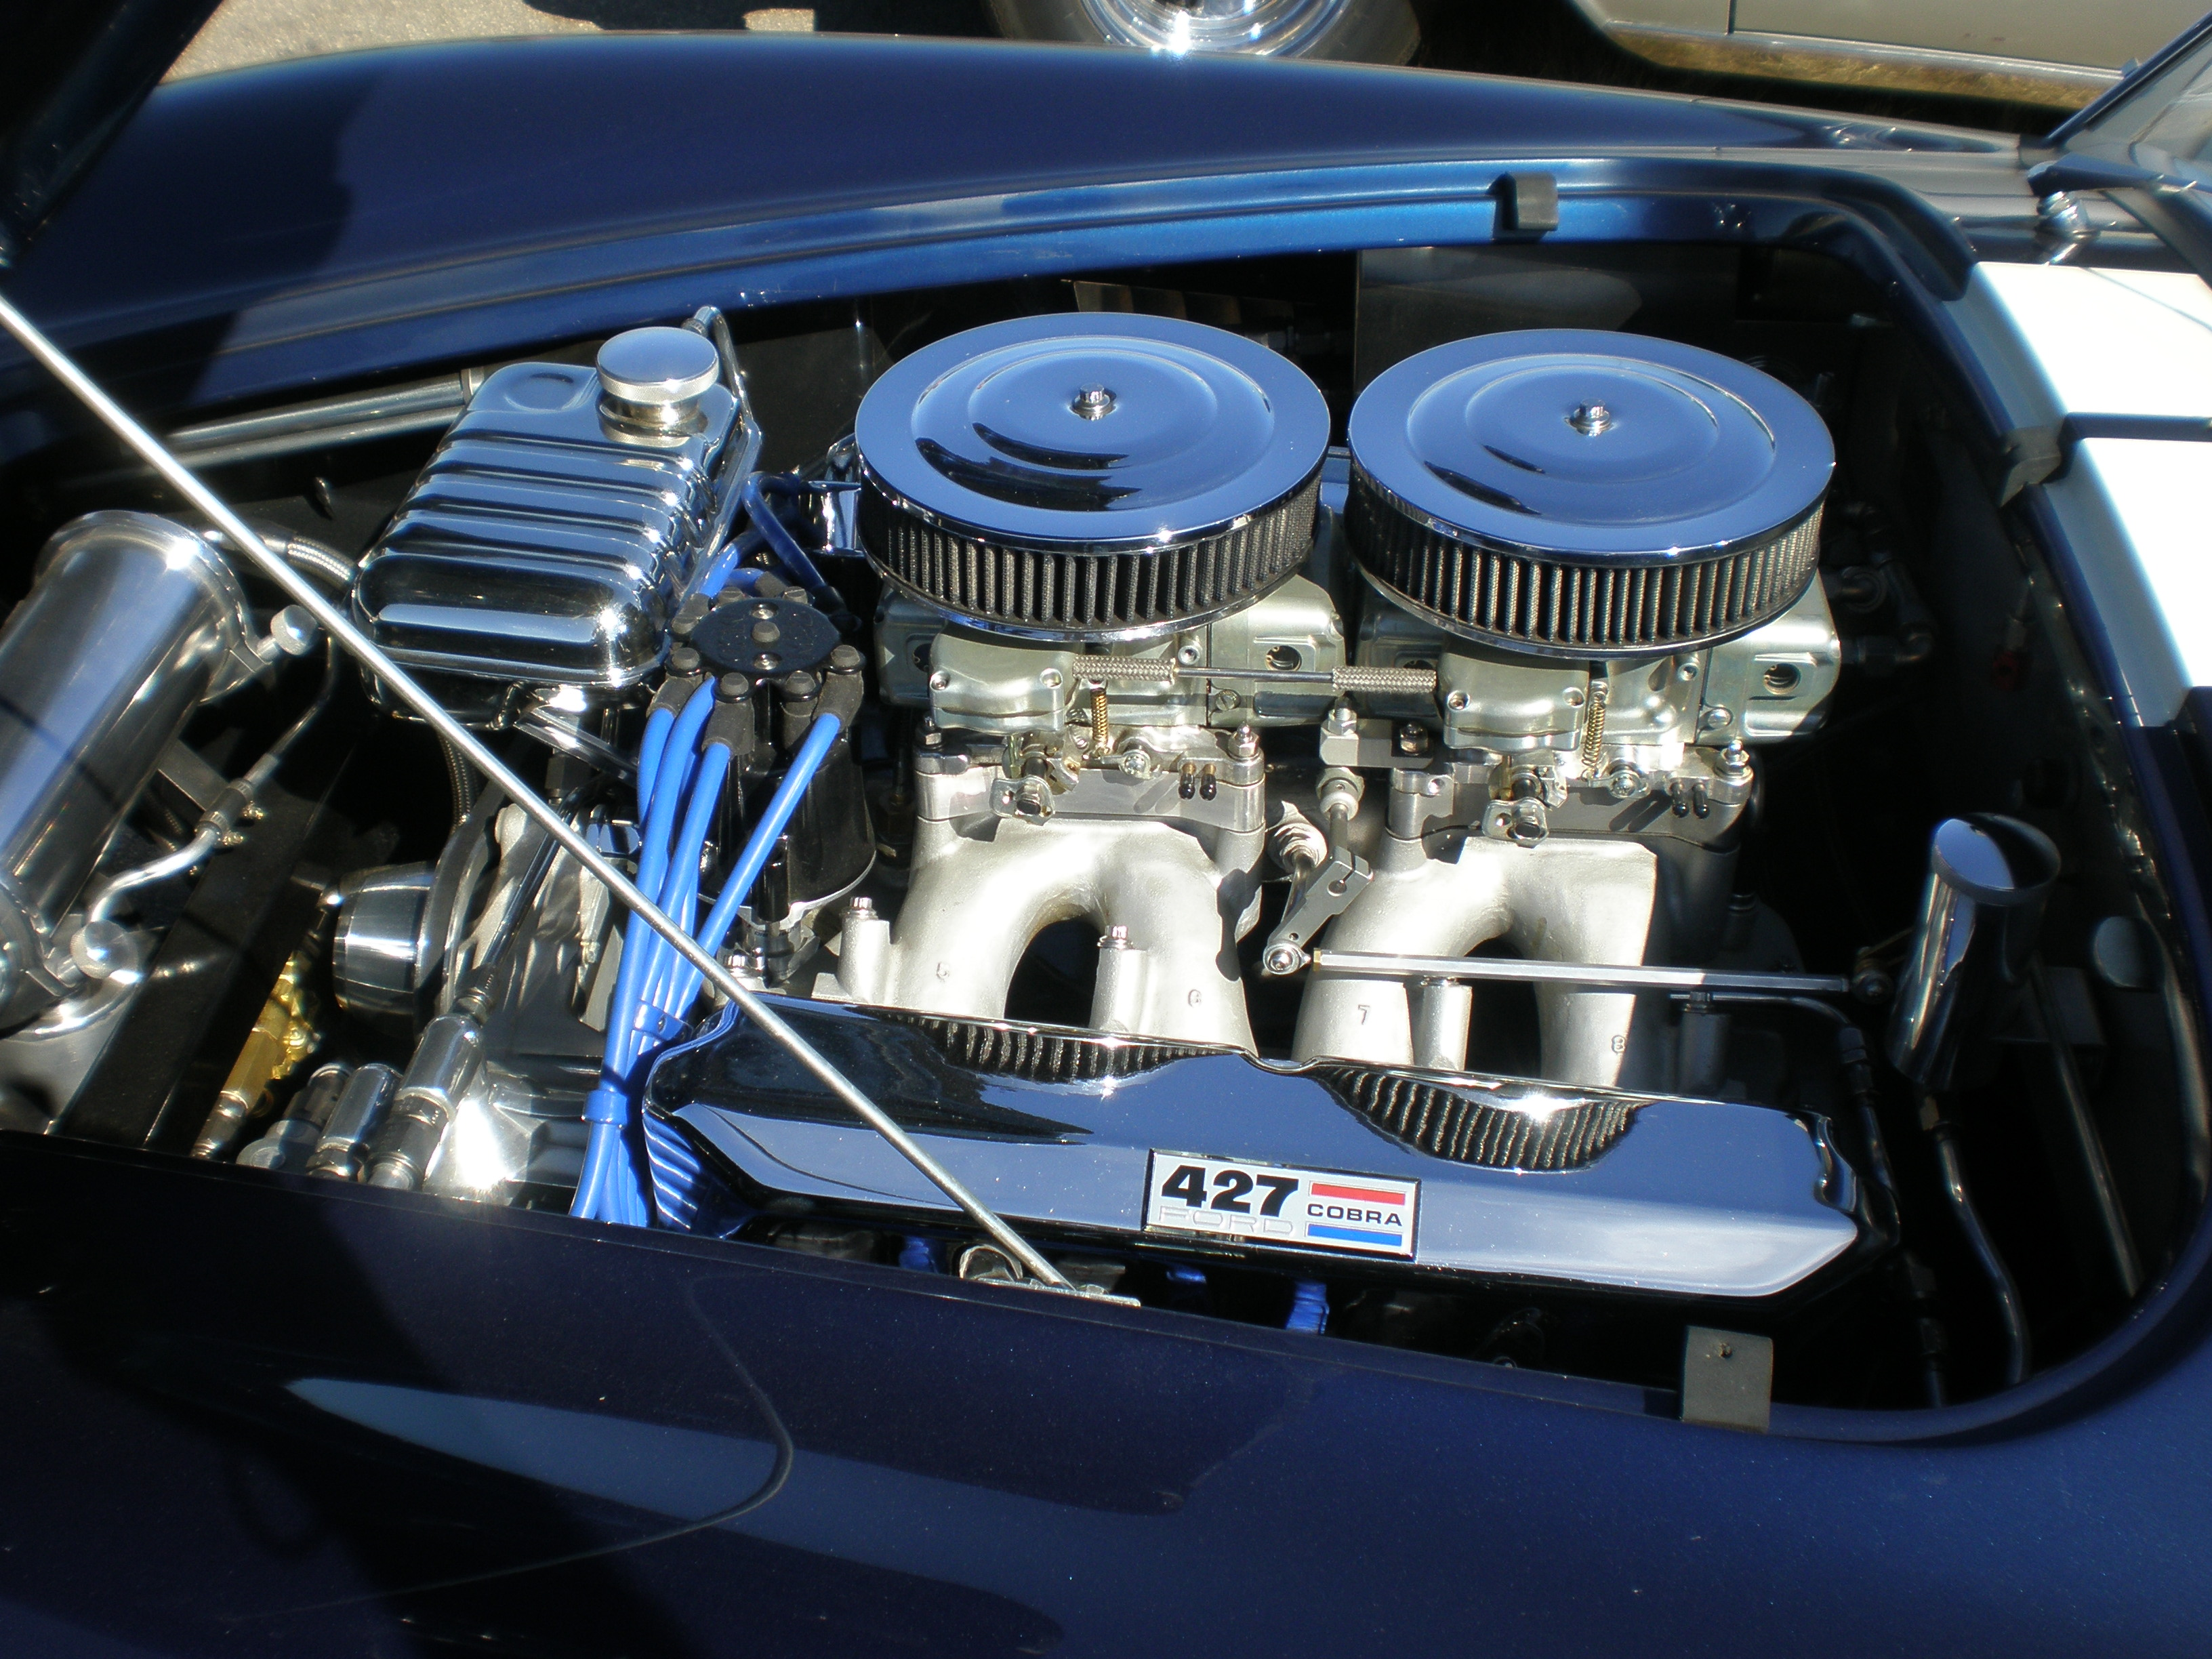 file blue ac cobra 427 engine jpg